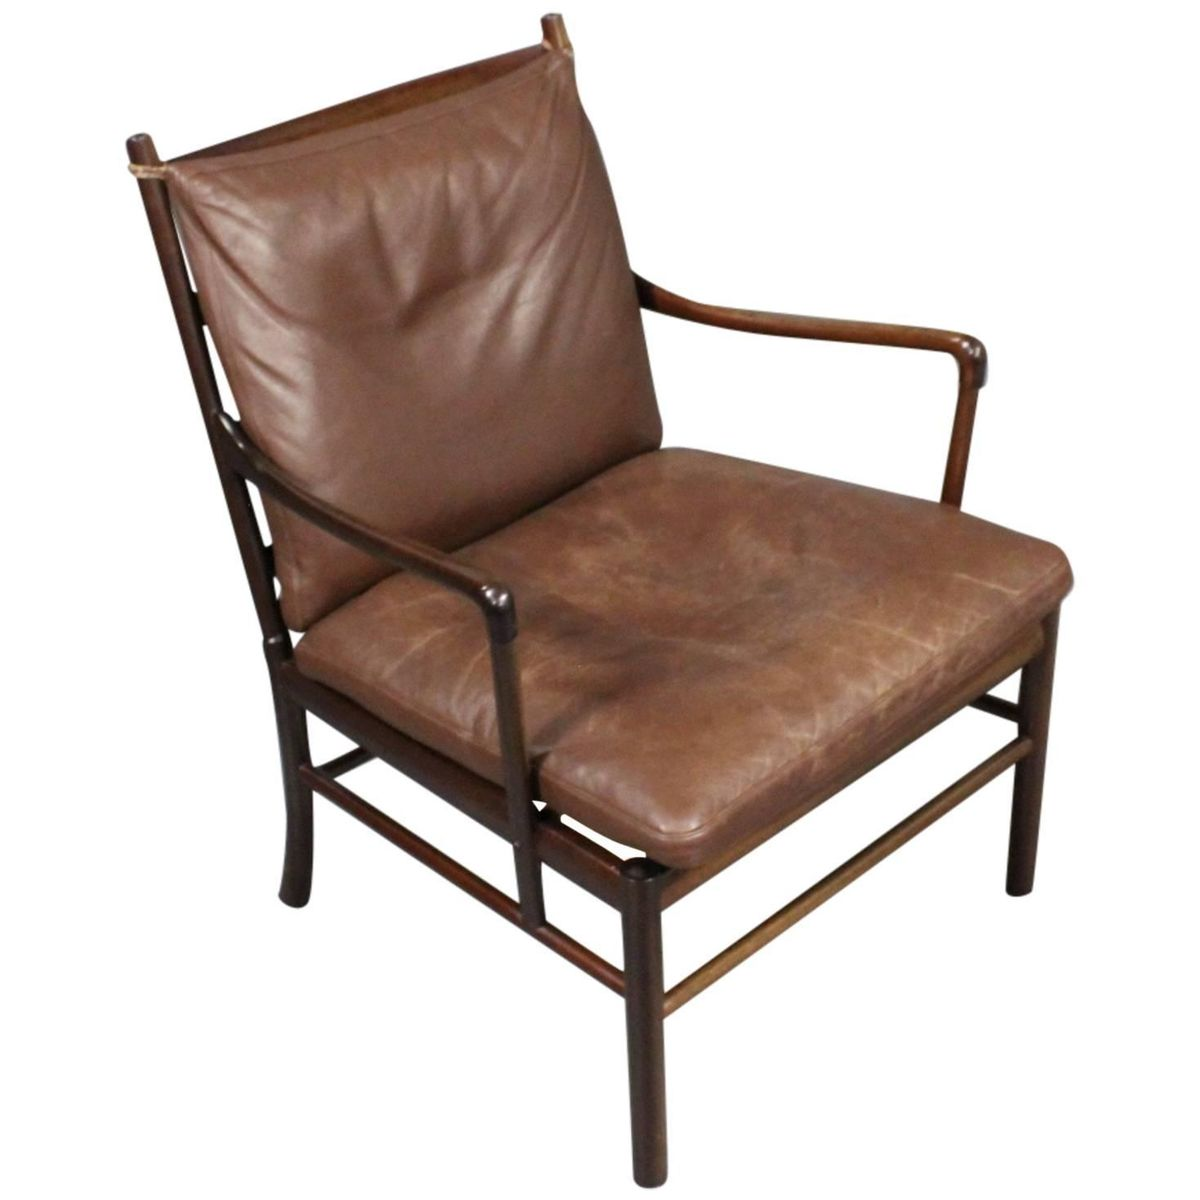 Colonial Chair Model Pj 149 Colonial Chair By Ole Wanscher For P